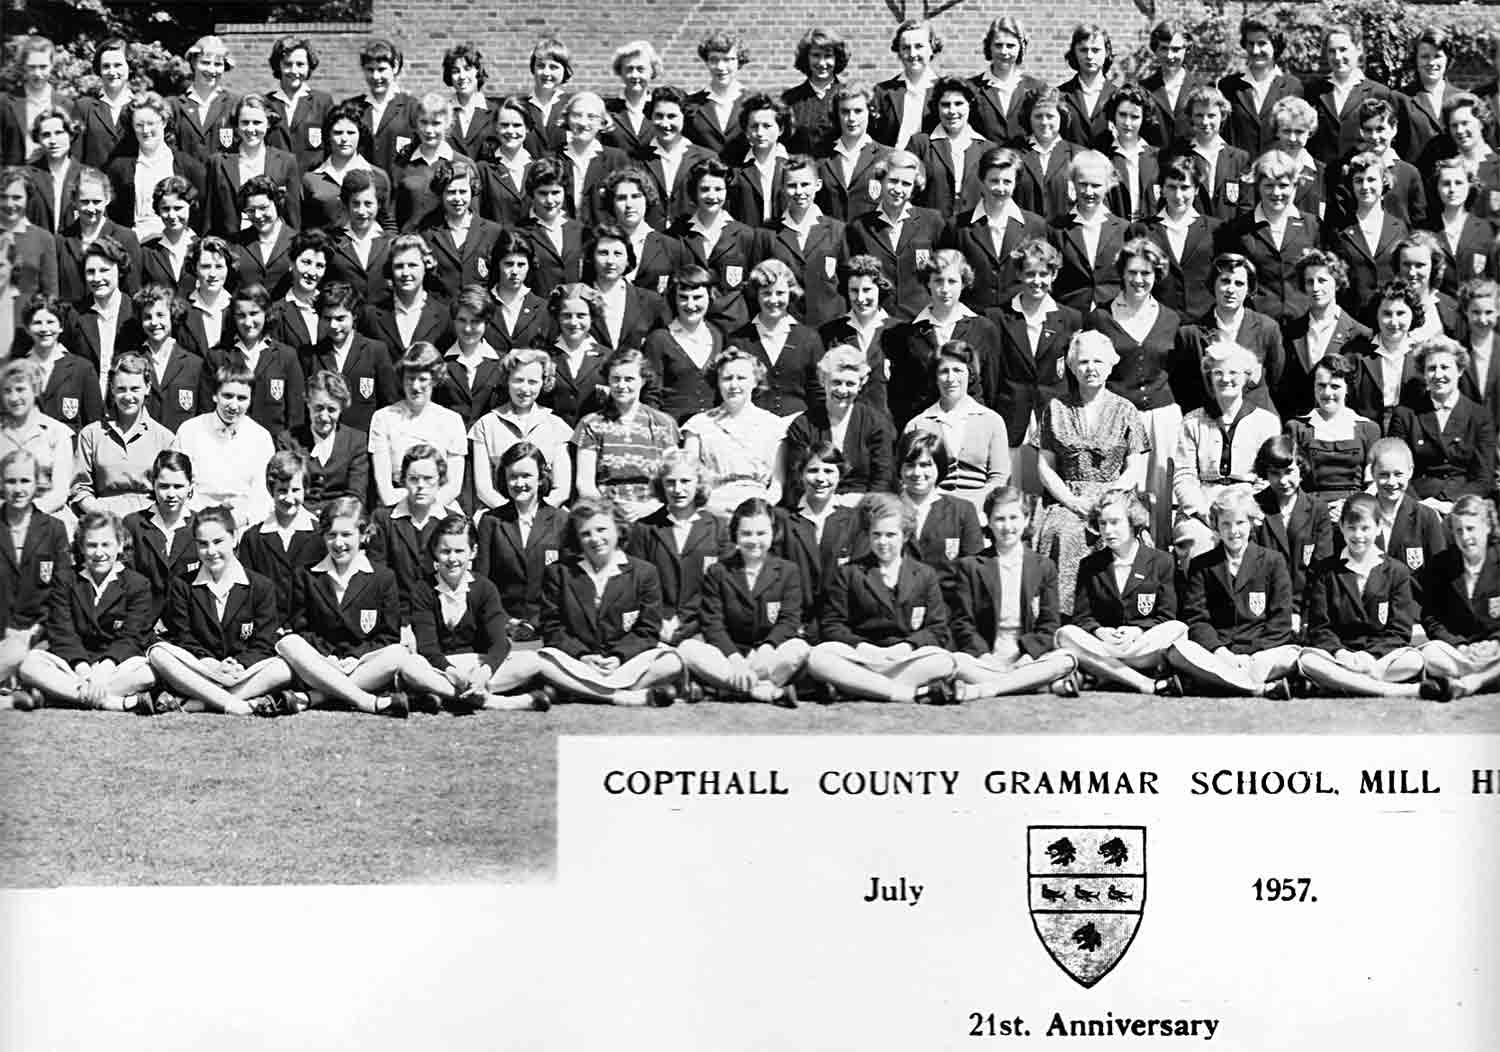 Third left section of the 1957 School photograph for Copthall County Grammar School